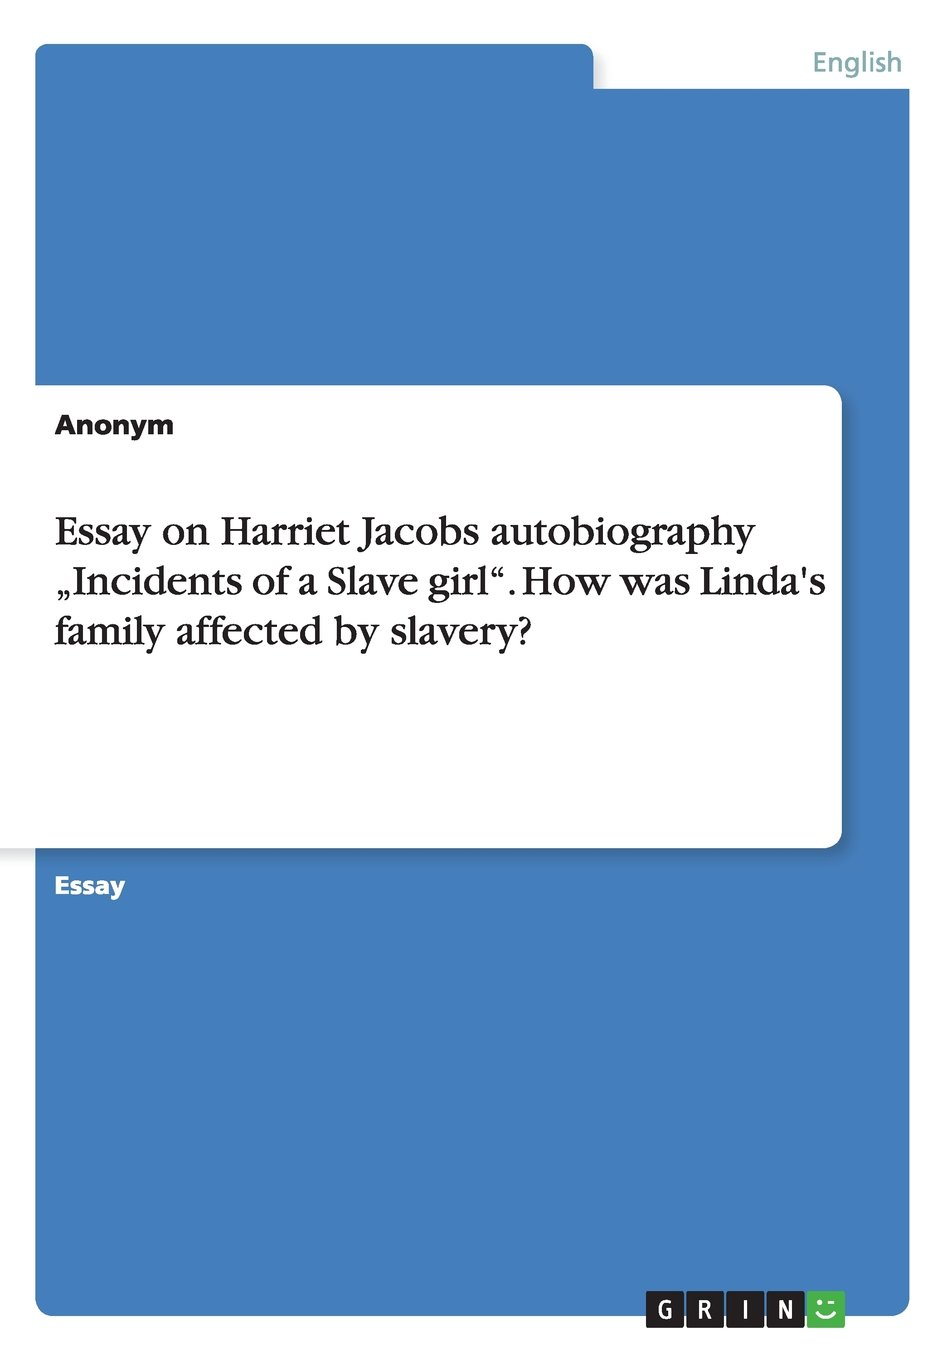 Essay On Harriet Jacobs Autobiography Incidents Of A Slave Girl  Essay On Harriet Jacobs Autobiography Incidents Of A Slave Girl How Was  Lindas Family Affected By Slavery Anonym  Amazoncom  Books English Essay Question Examples also Essay On Cow In English  English Essay Structure